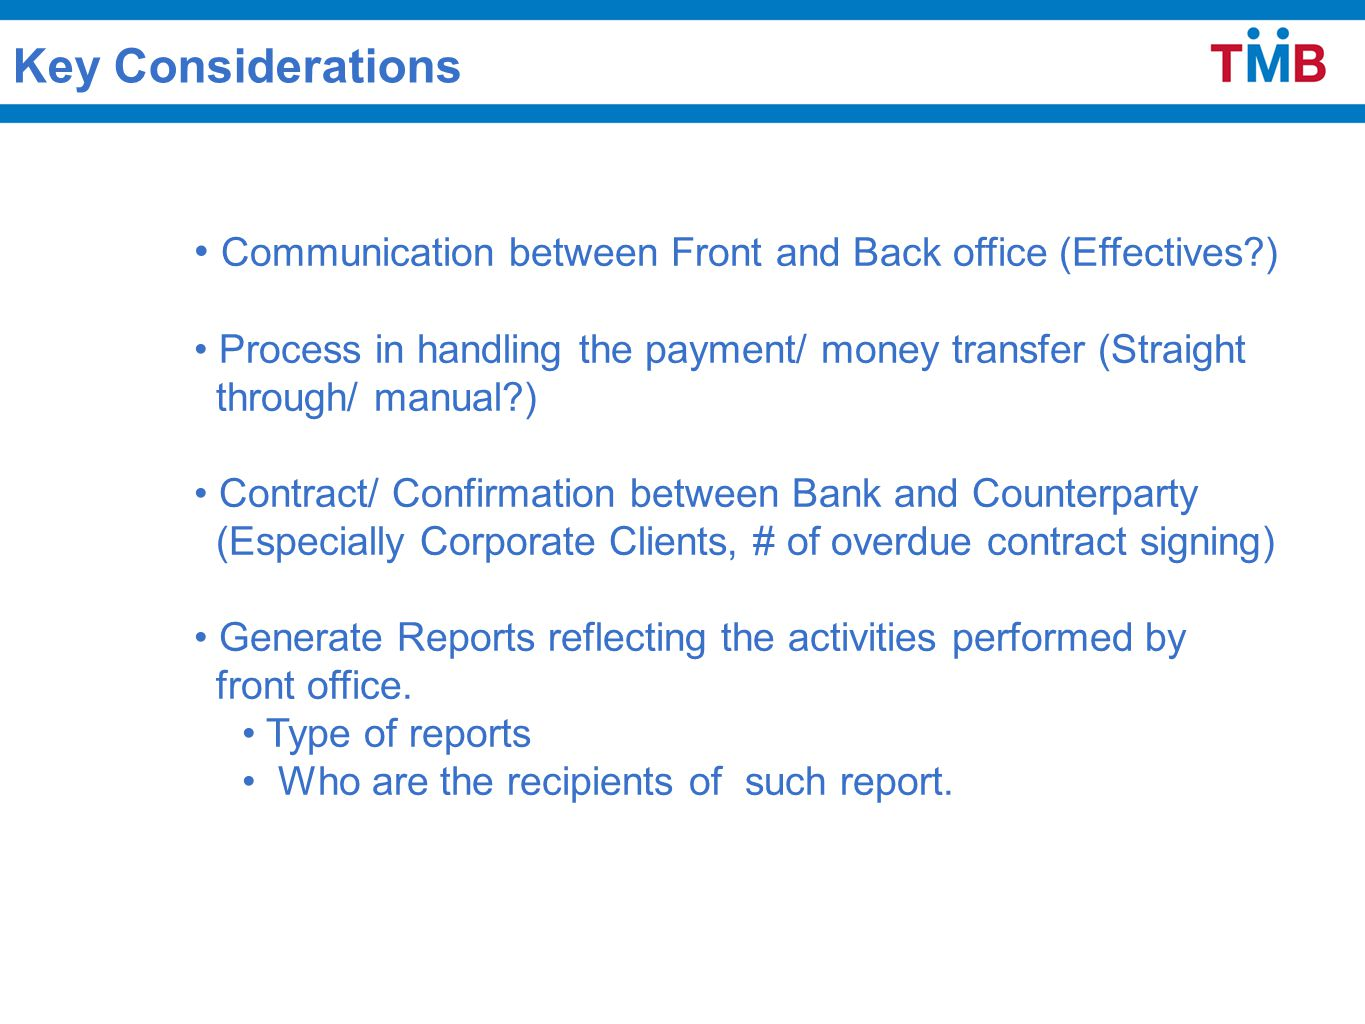 Communication between Front and Back office (Effectives?) Process in handling the payment/ money transfer (Straight through/ manual?) Contract/ Confirmation between Bank and Counterparty (Especially Corporate Clients, # of overdue contract signing) Generate Reports reflecting the activities performed by front office.